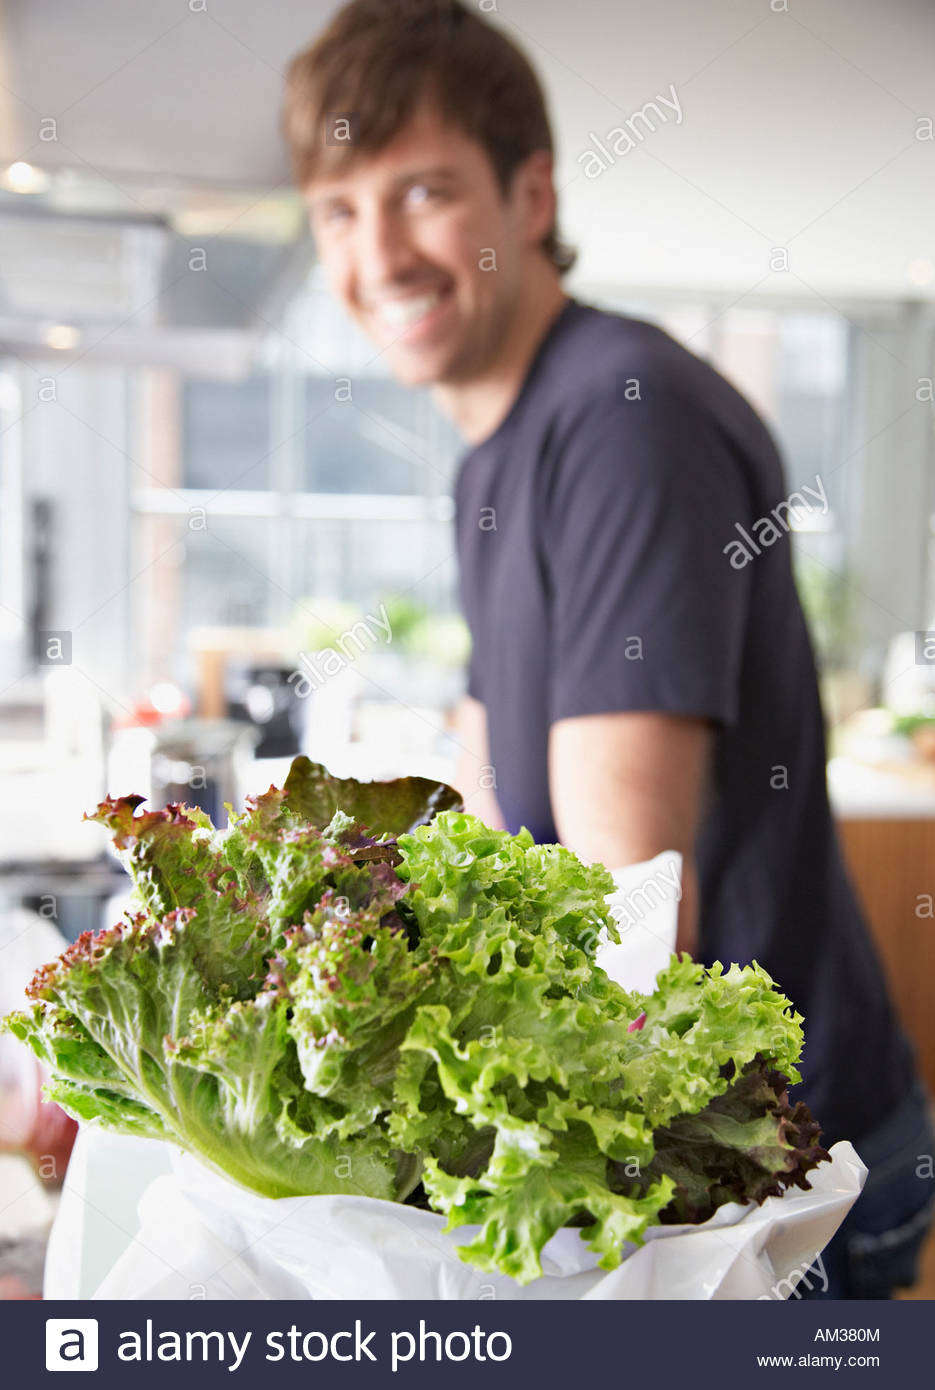 Lettuce in a bag with man in background - Stock Image